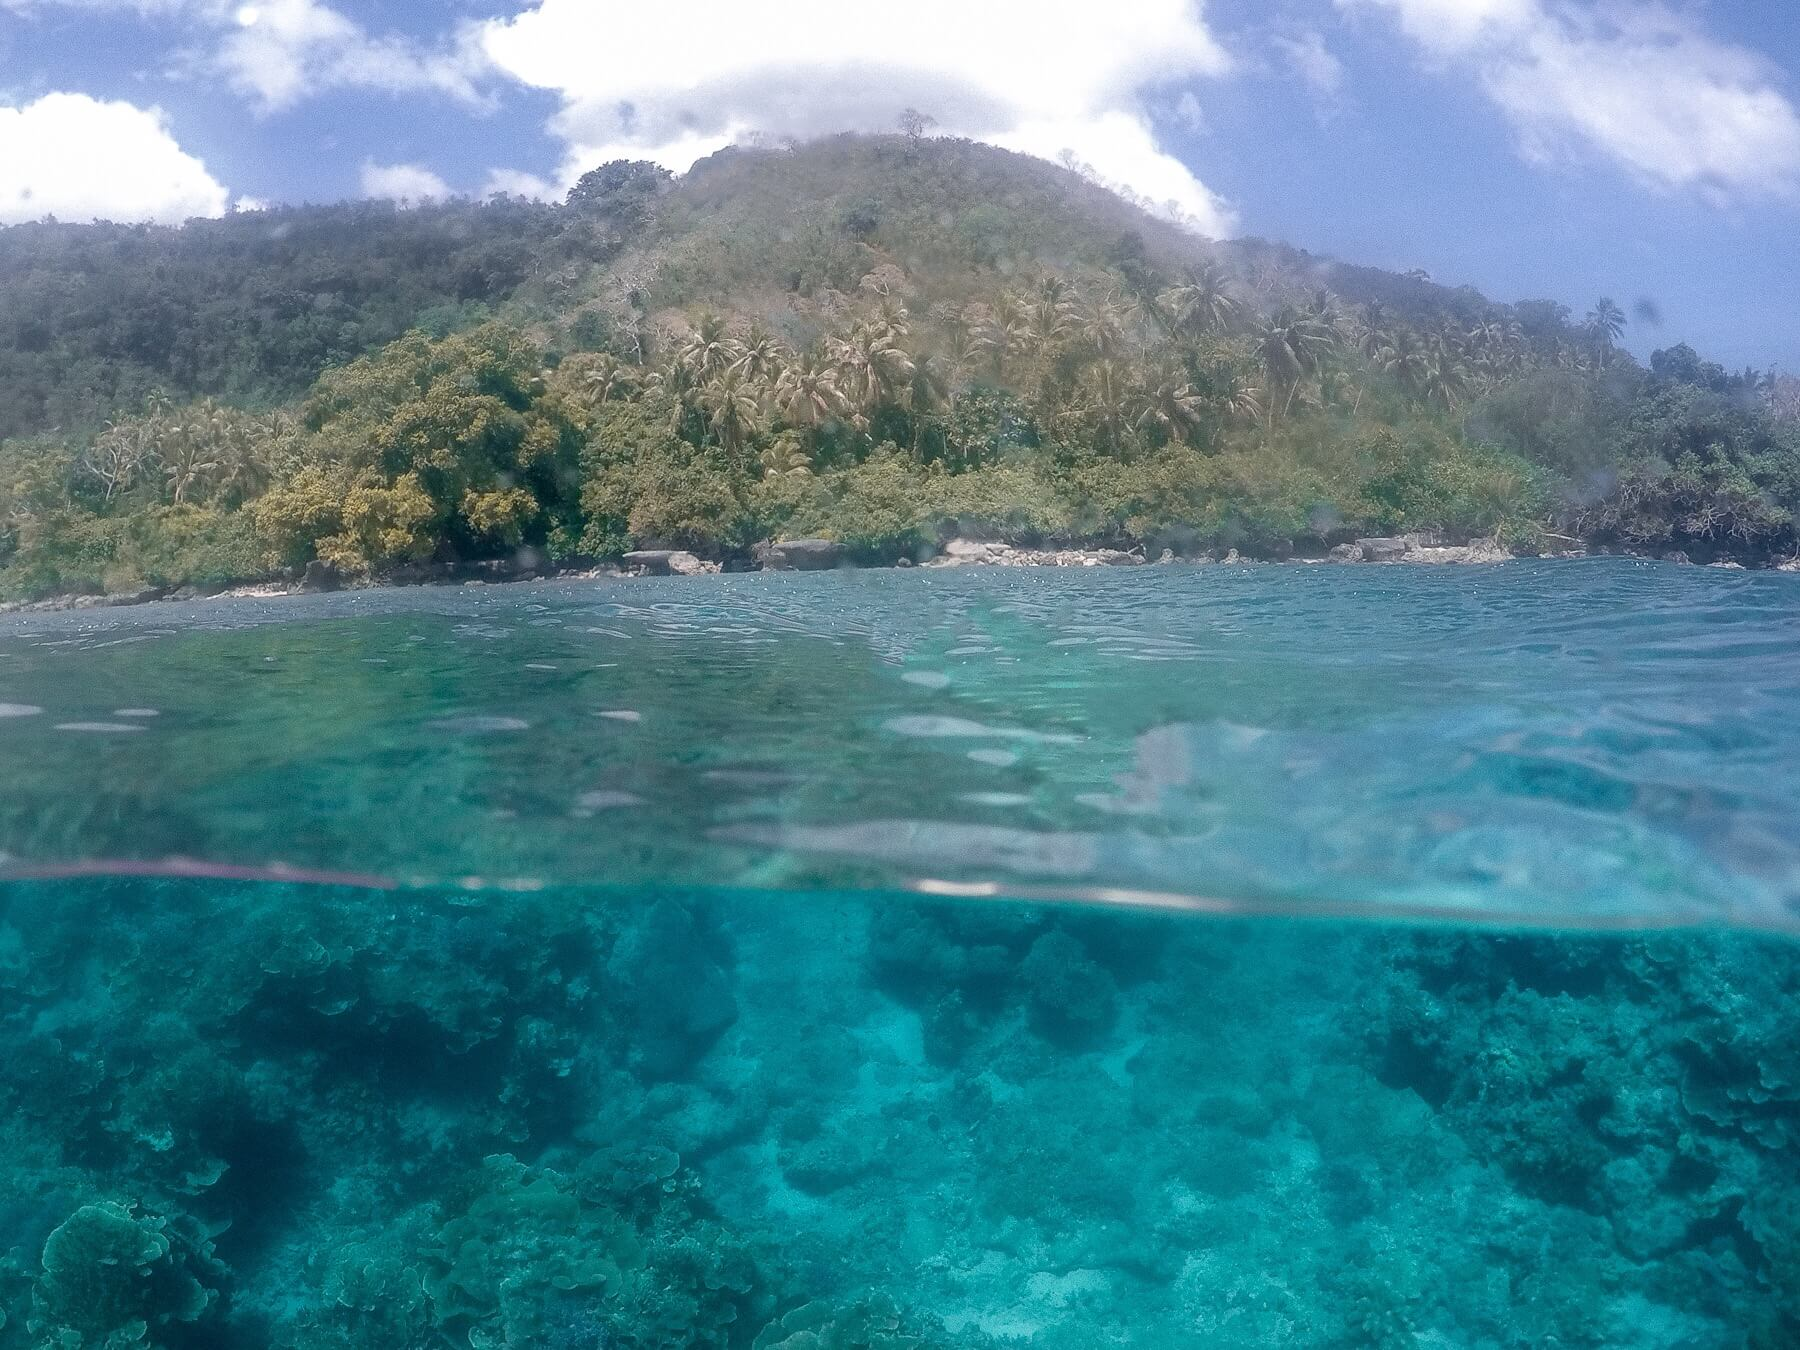 A photo with half underwater with the coral, and half above with the coastline